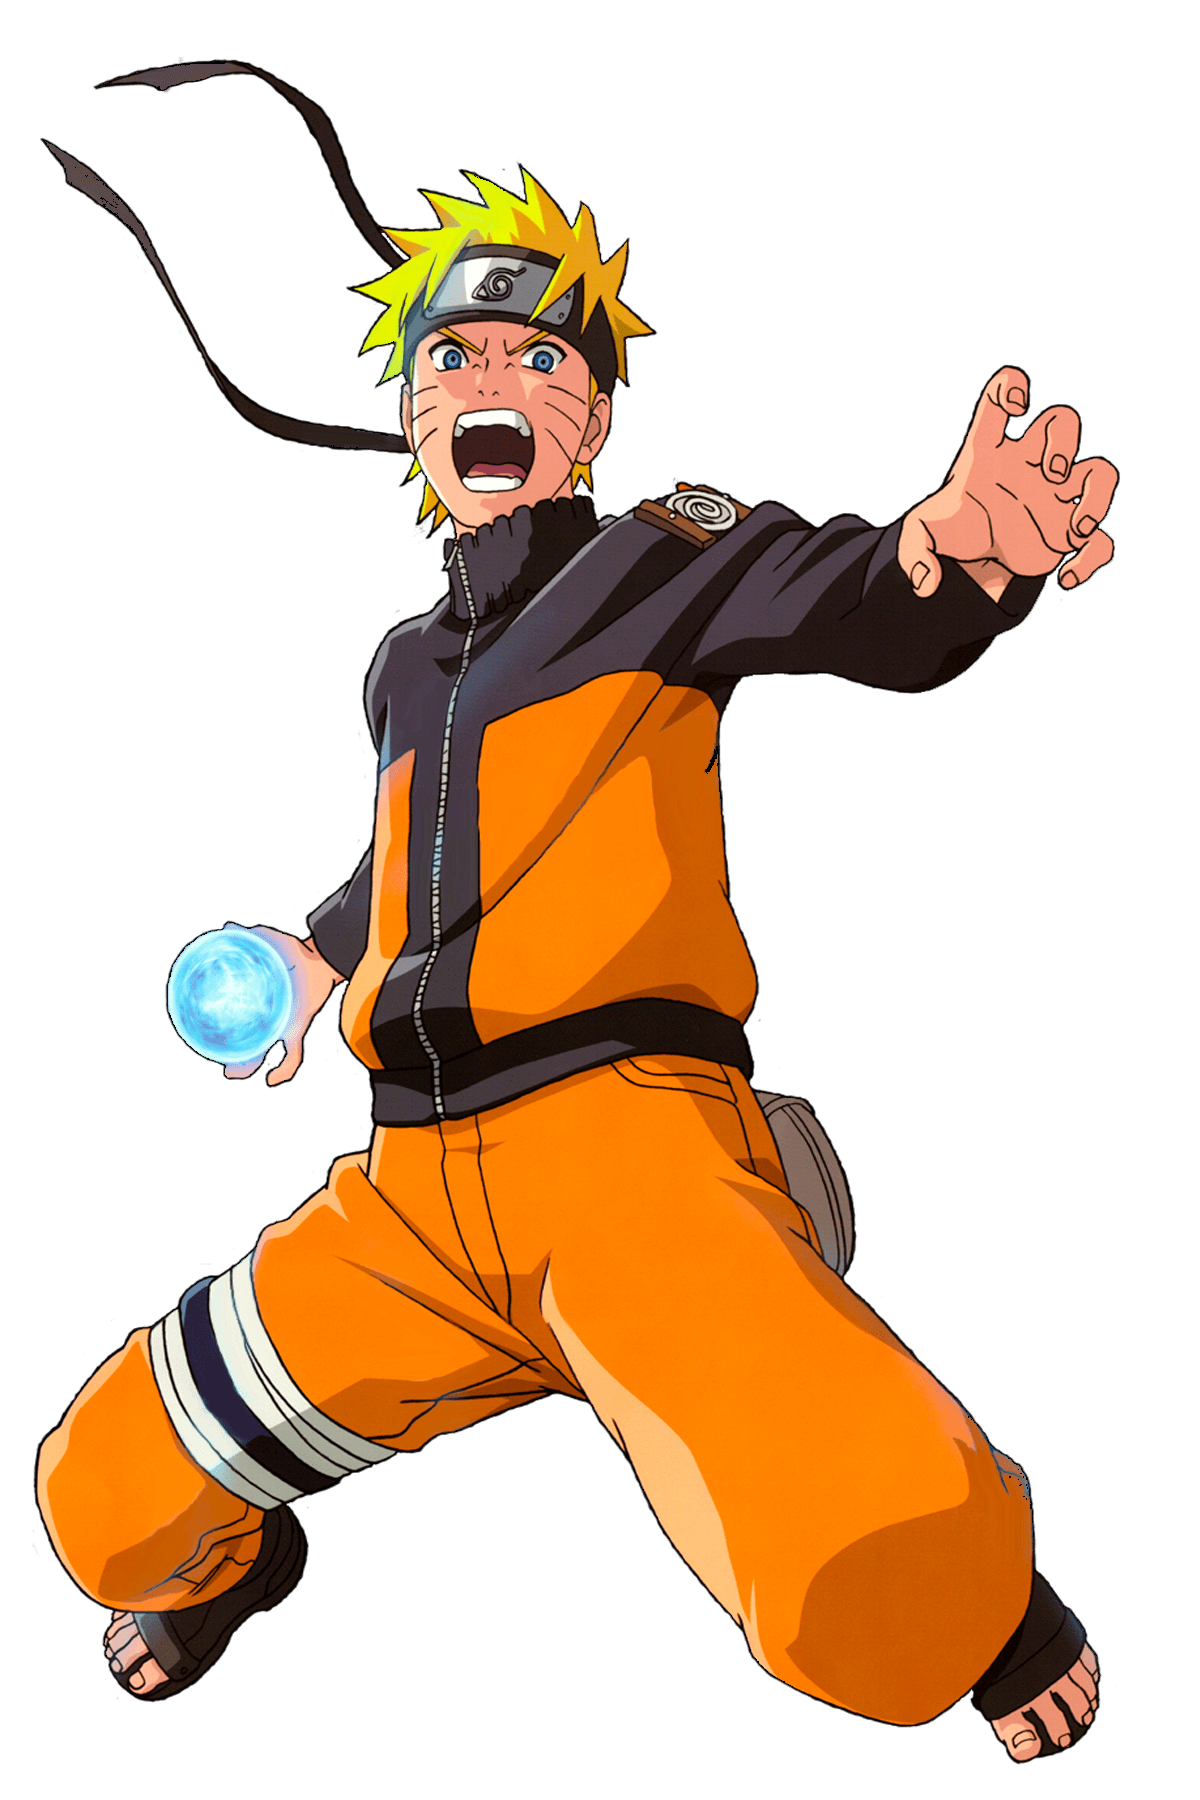 Naruto png images. Throwing ball transparent stickpng